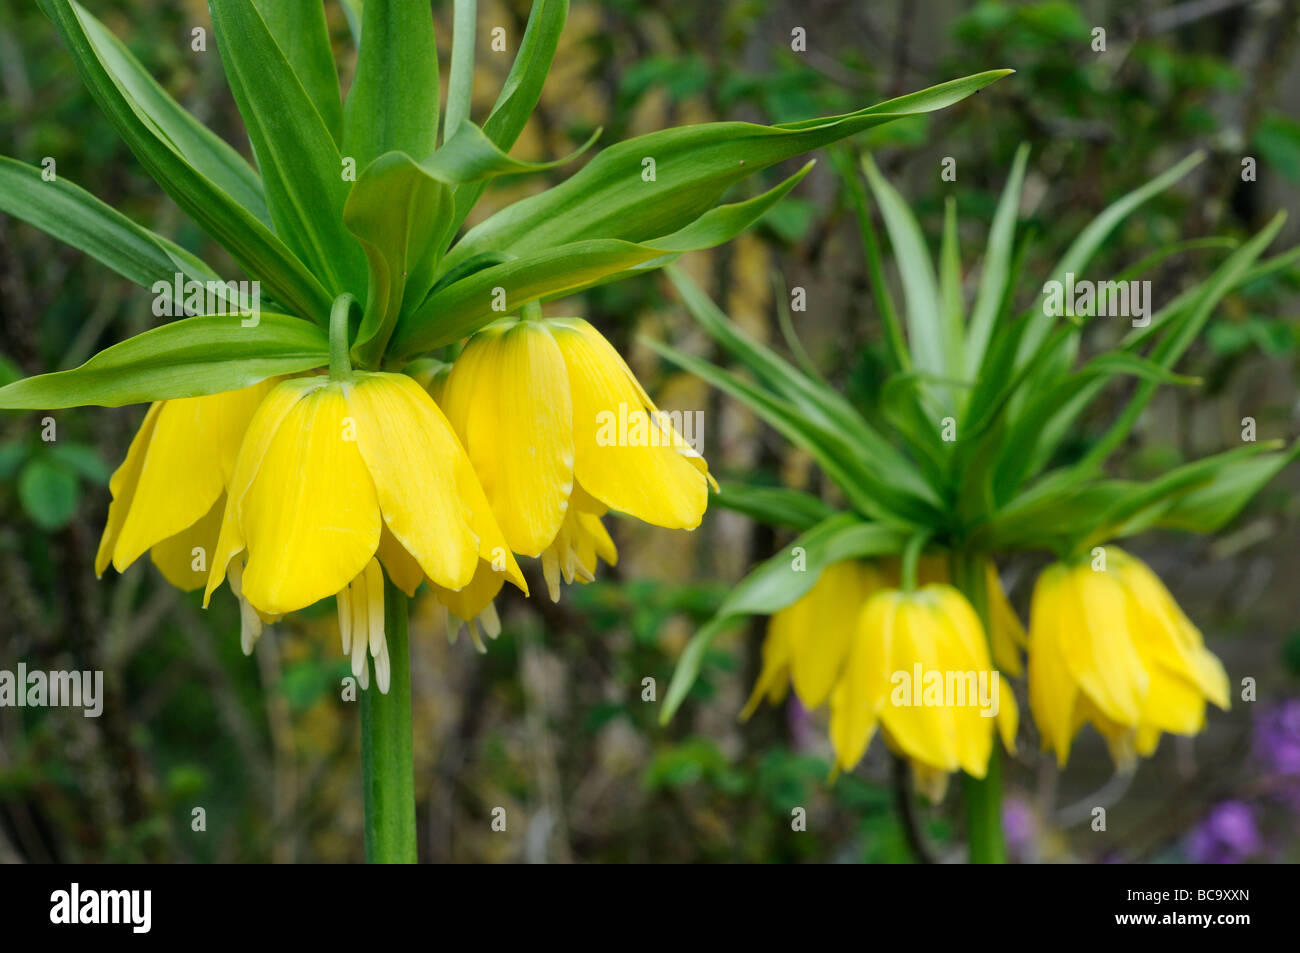 Fritillaria imperialis yellow flowered three plants in full flower